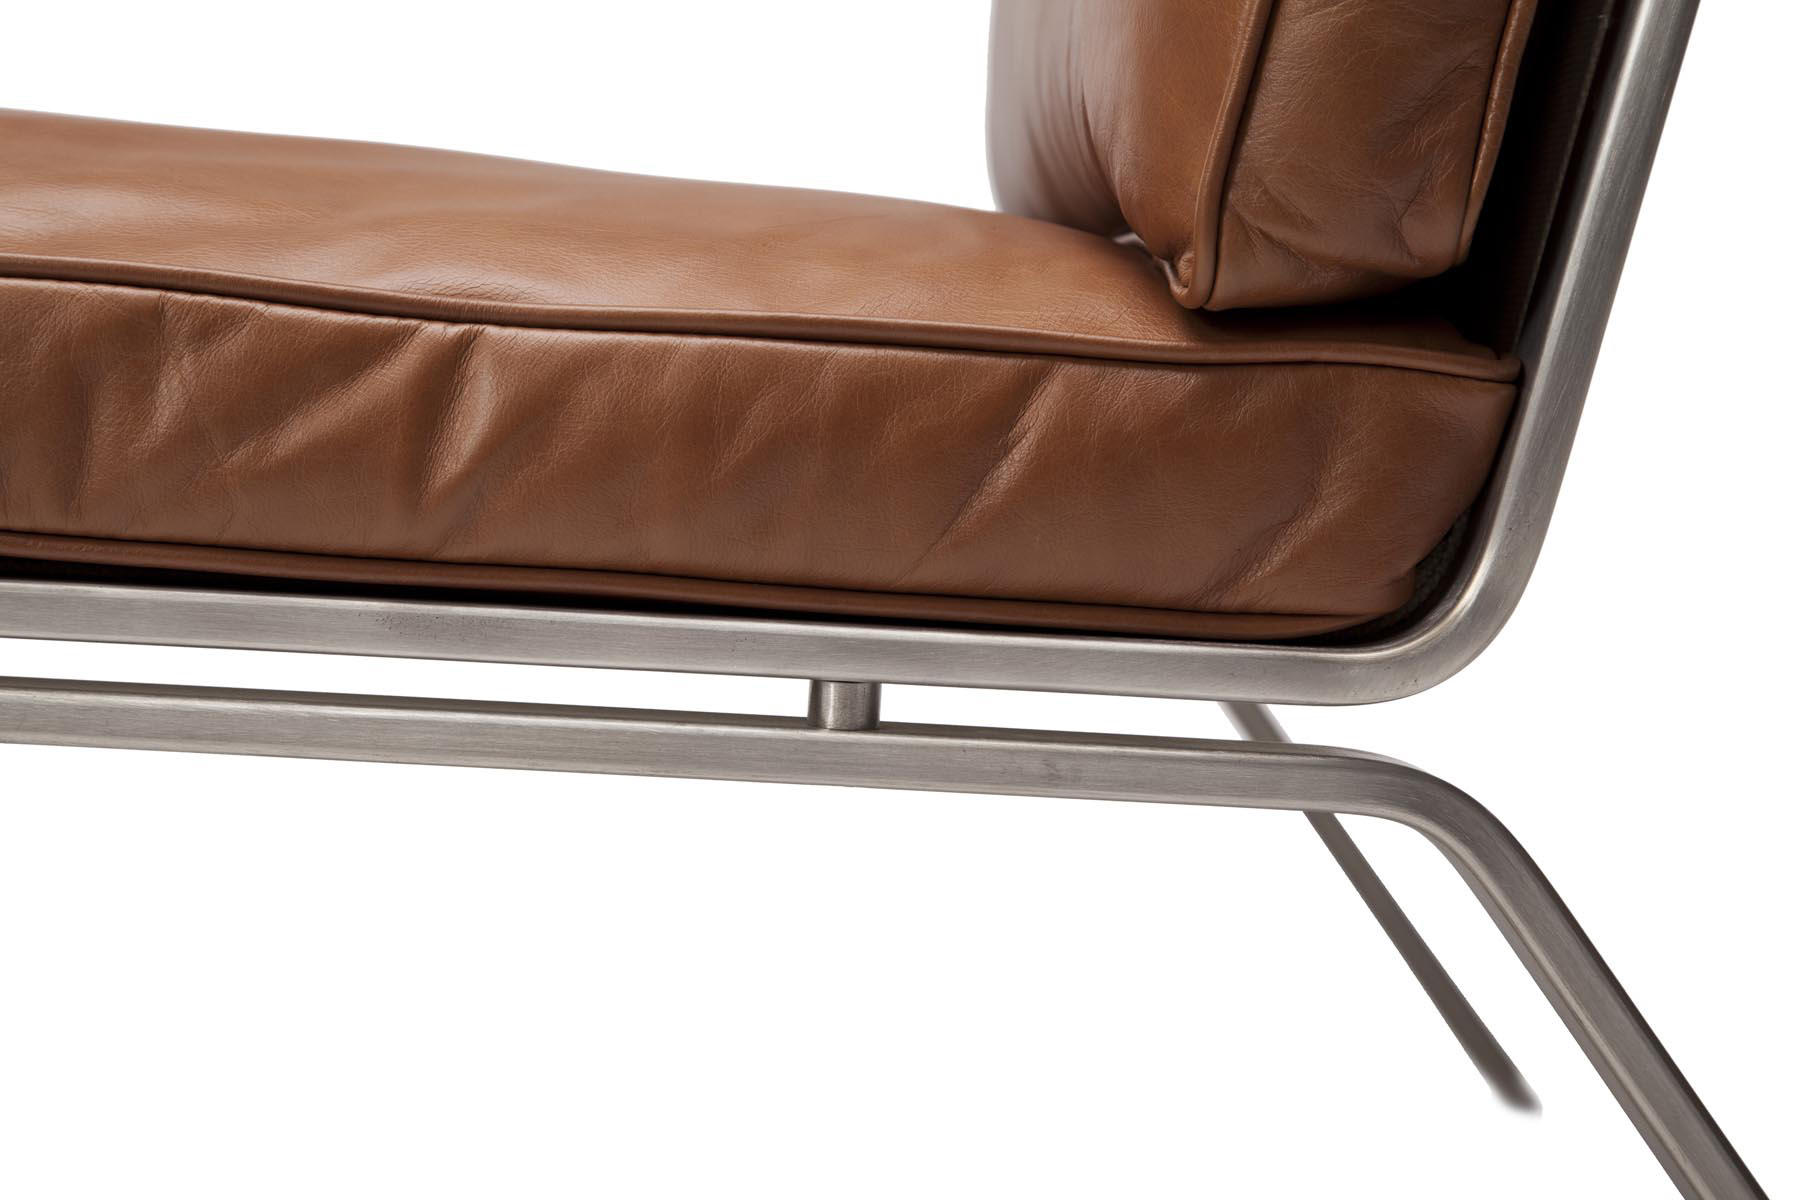 ... Man Lounge Chair: Vintage Leather Cognac 21000 By NORR11 | Lounge Chairs  ...